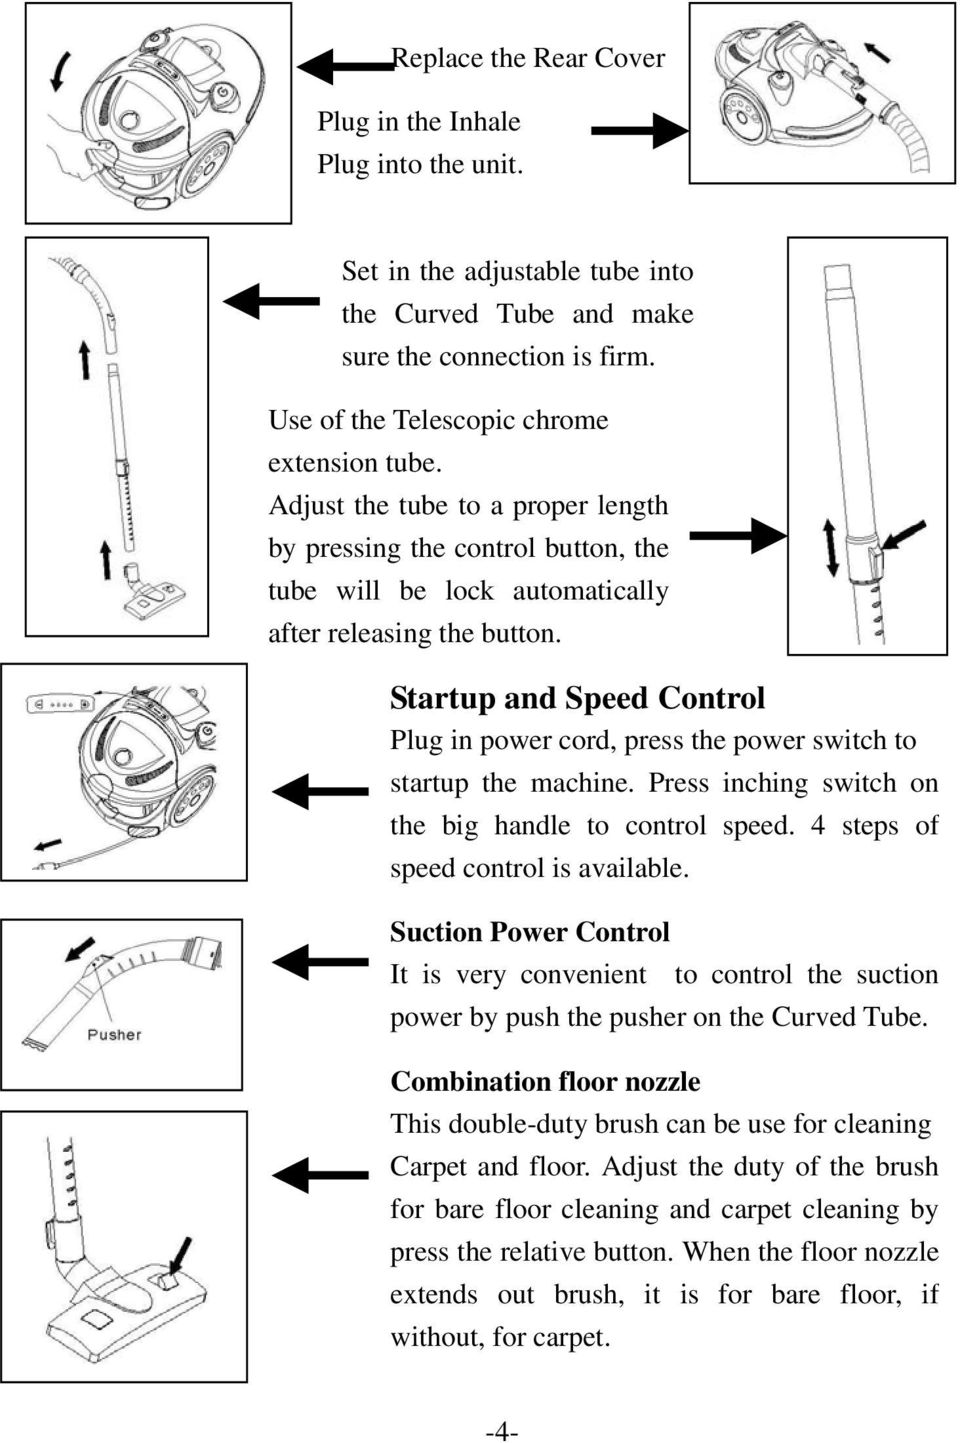 Startup and Speed Control Plug in power cord, press the power switch to startup the machine. Press inching switch on the big handle to control speed. 4 steps of speed control is available.